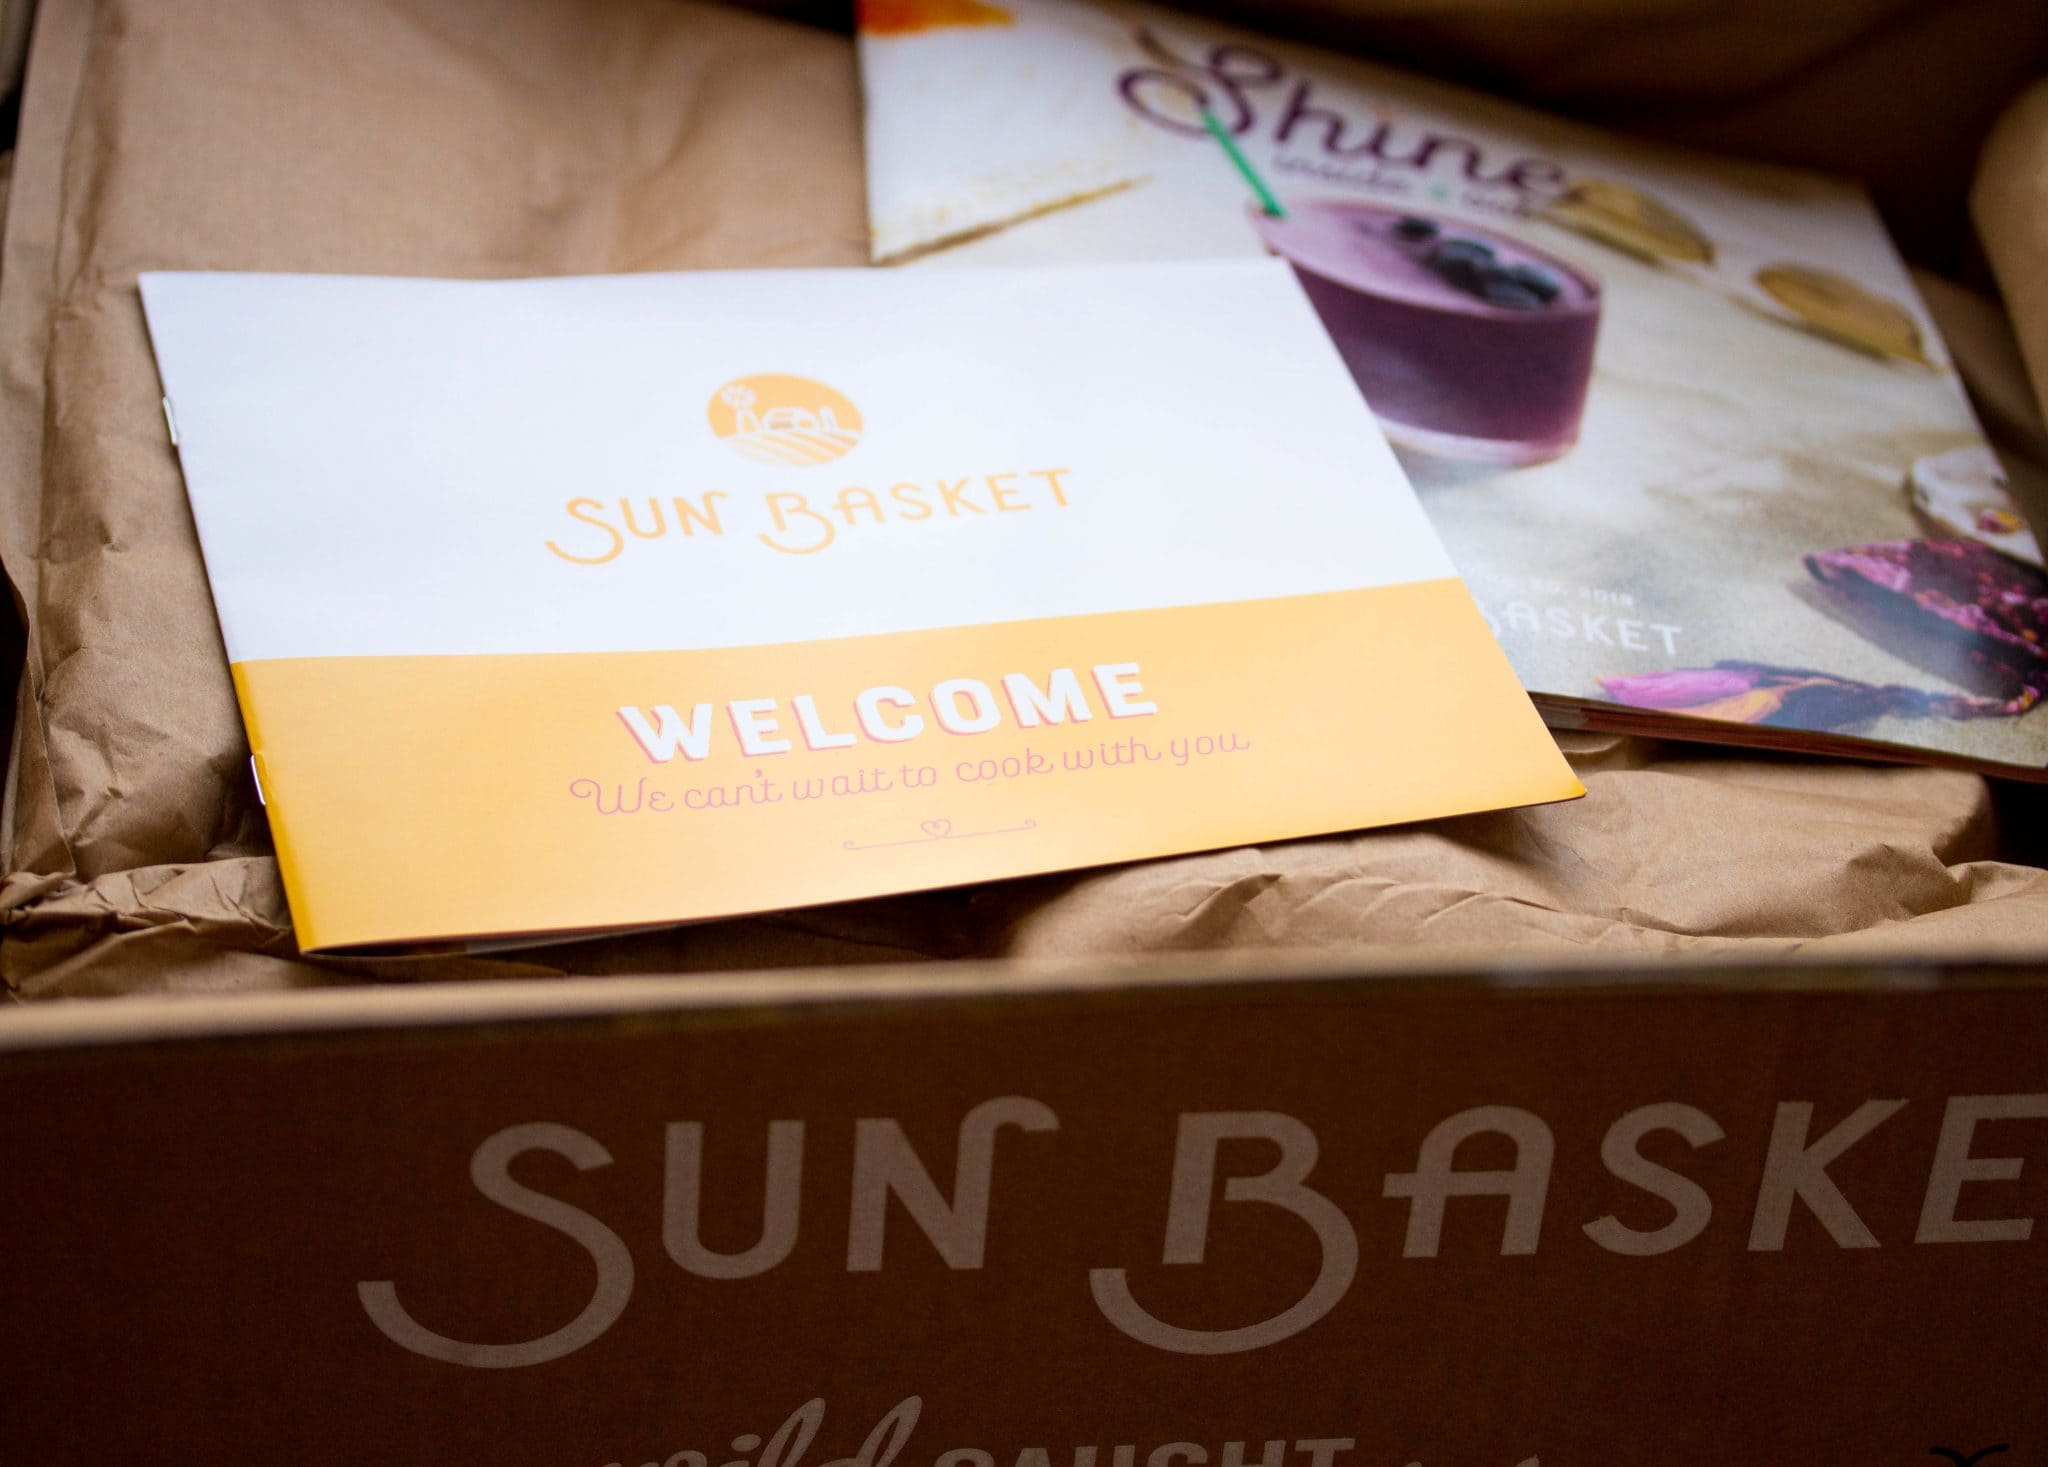 Sun Basket Contents